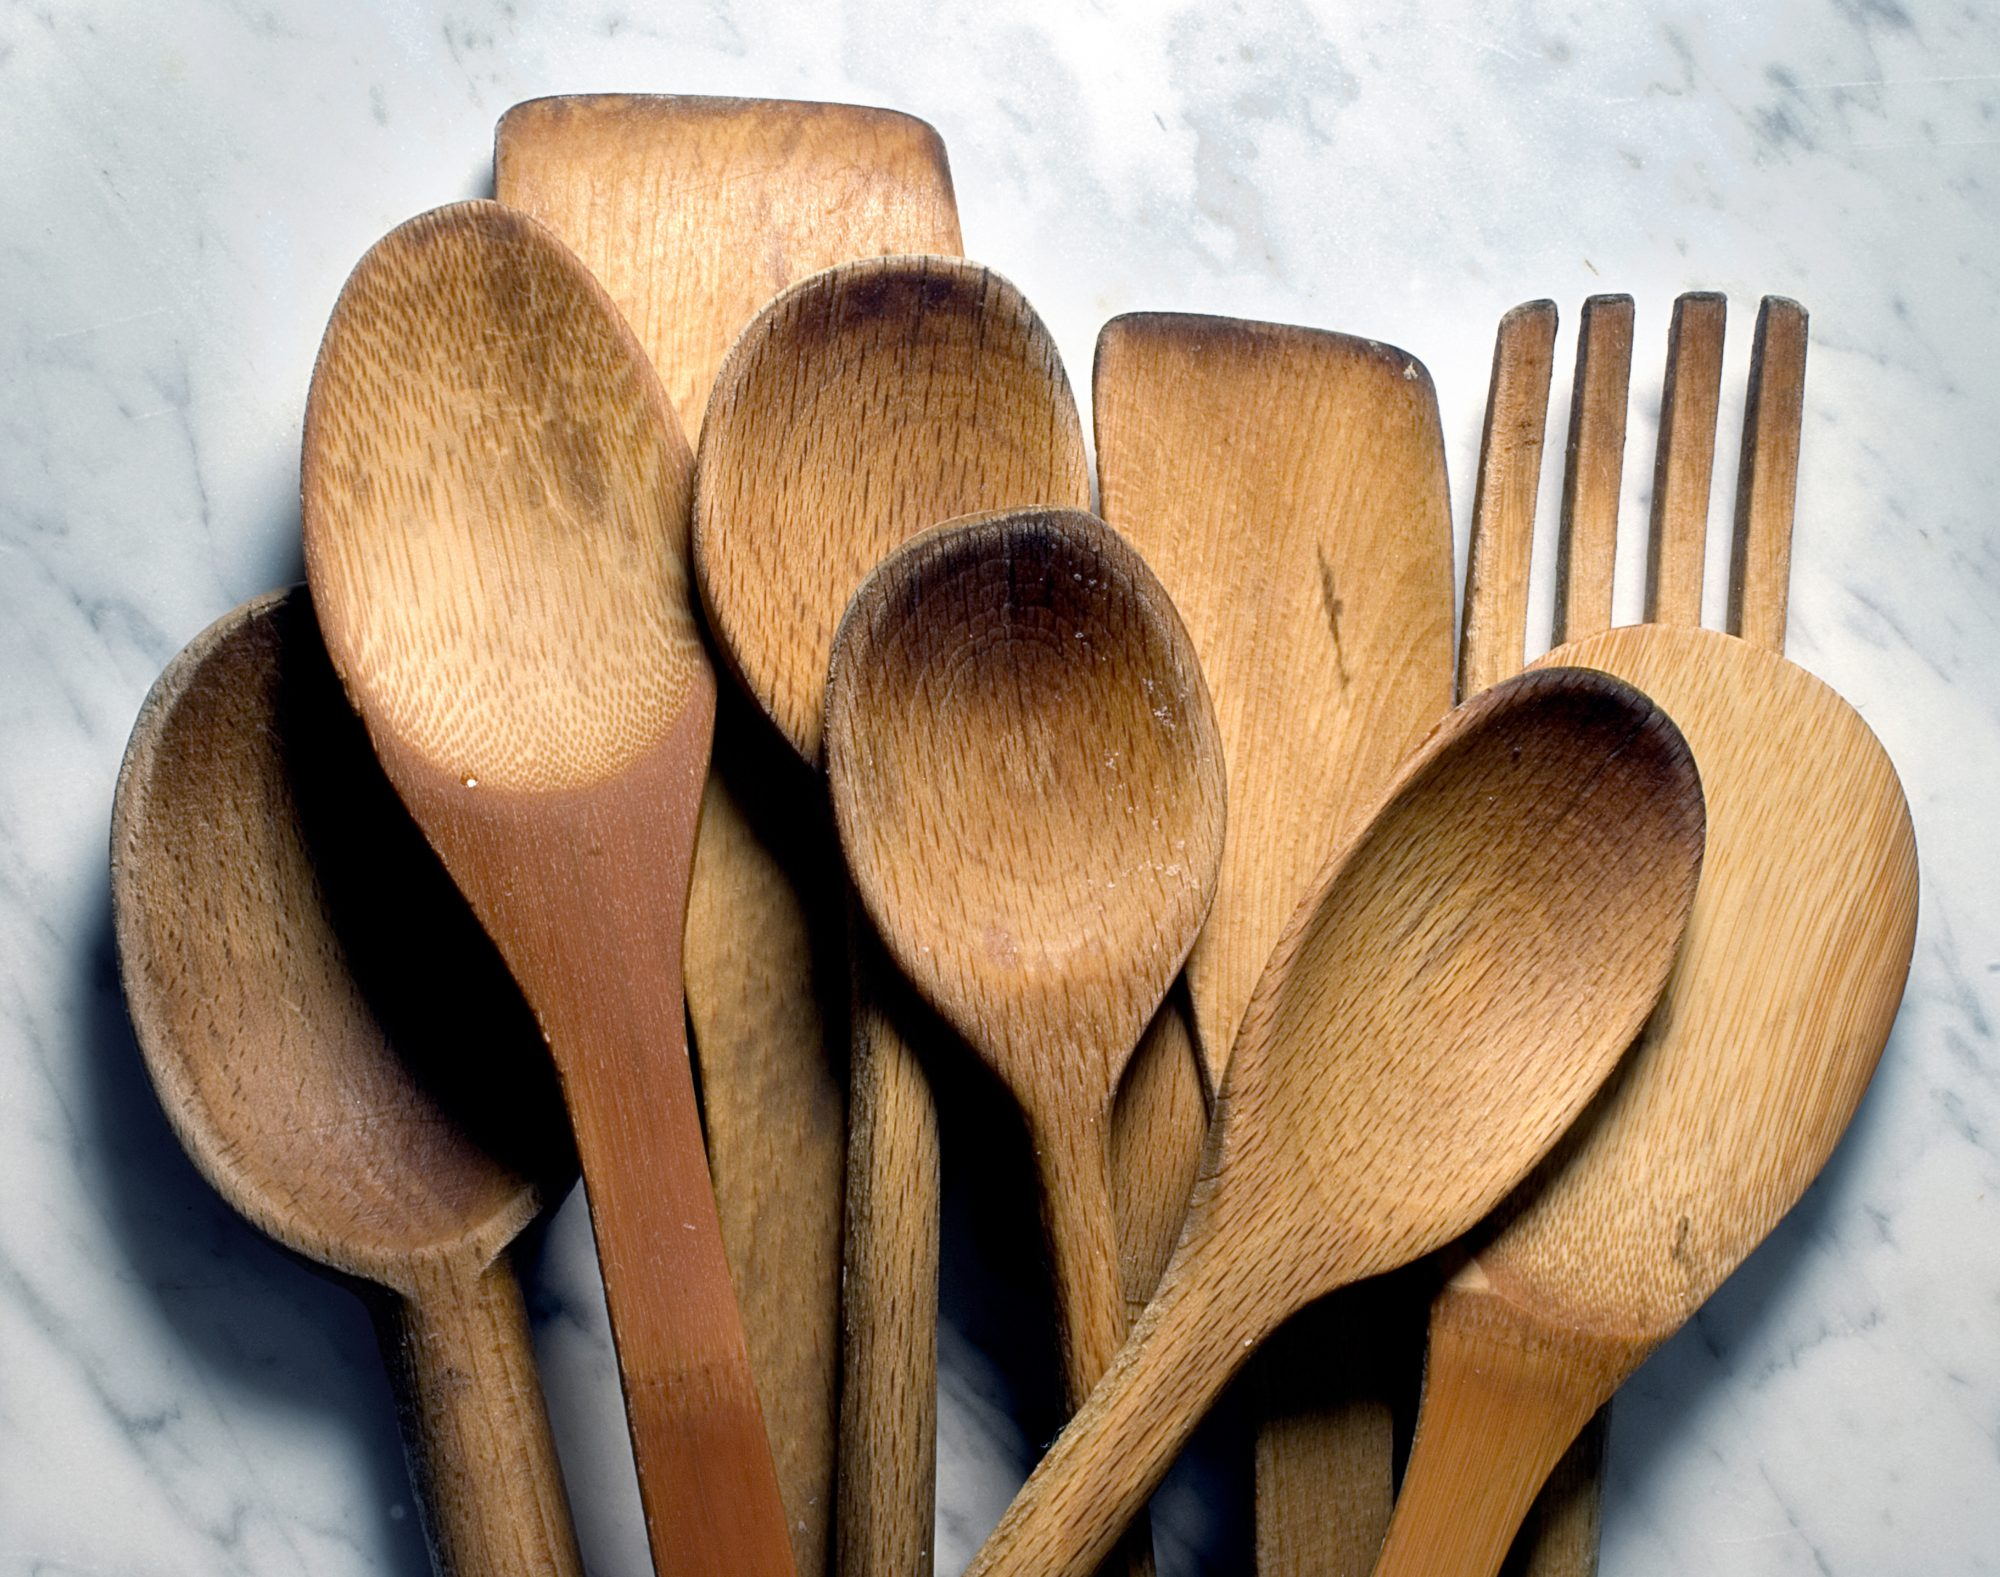 getty-wooden-spoons-image